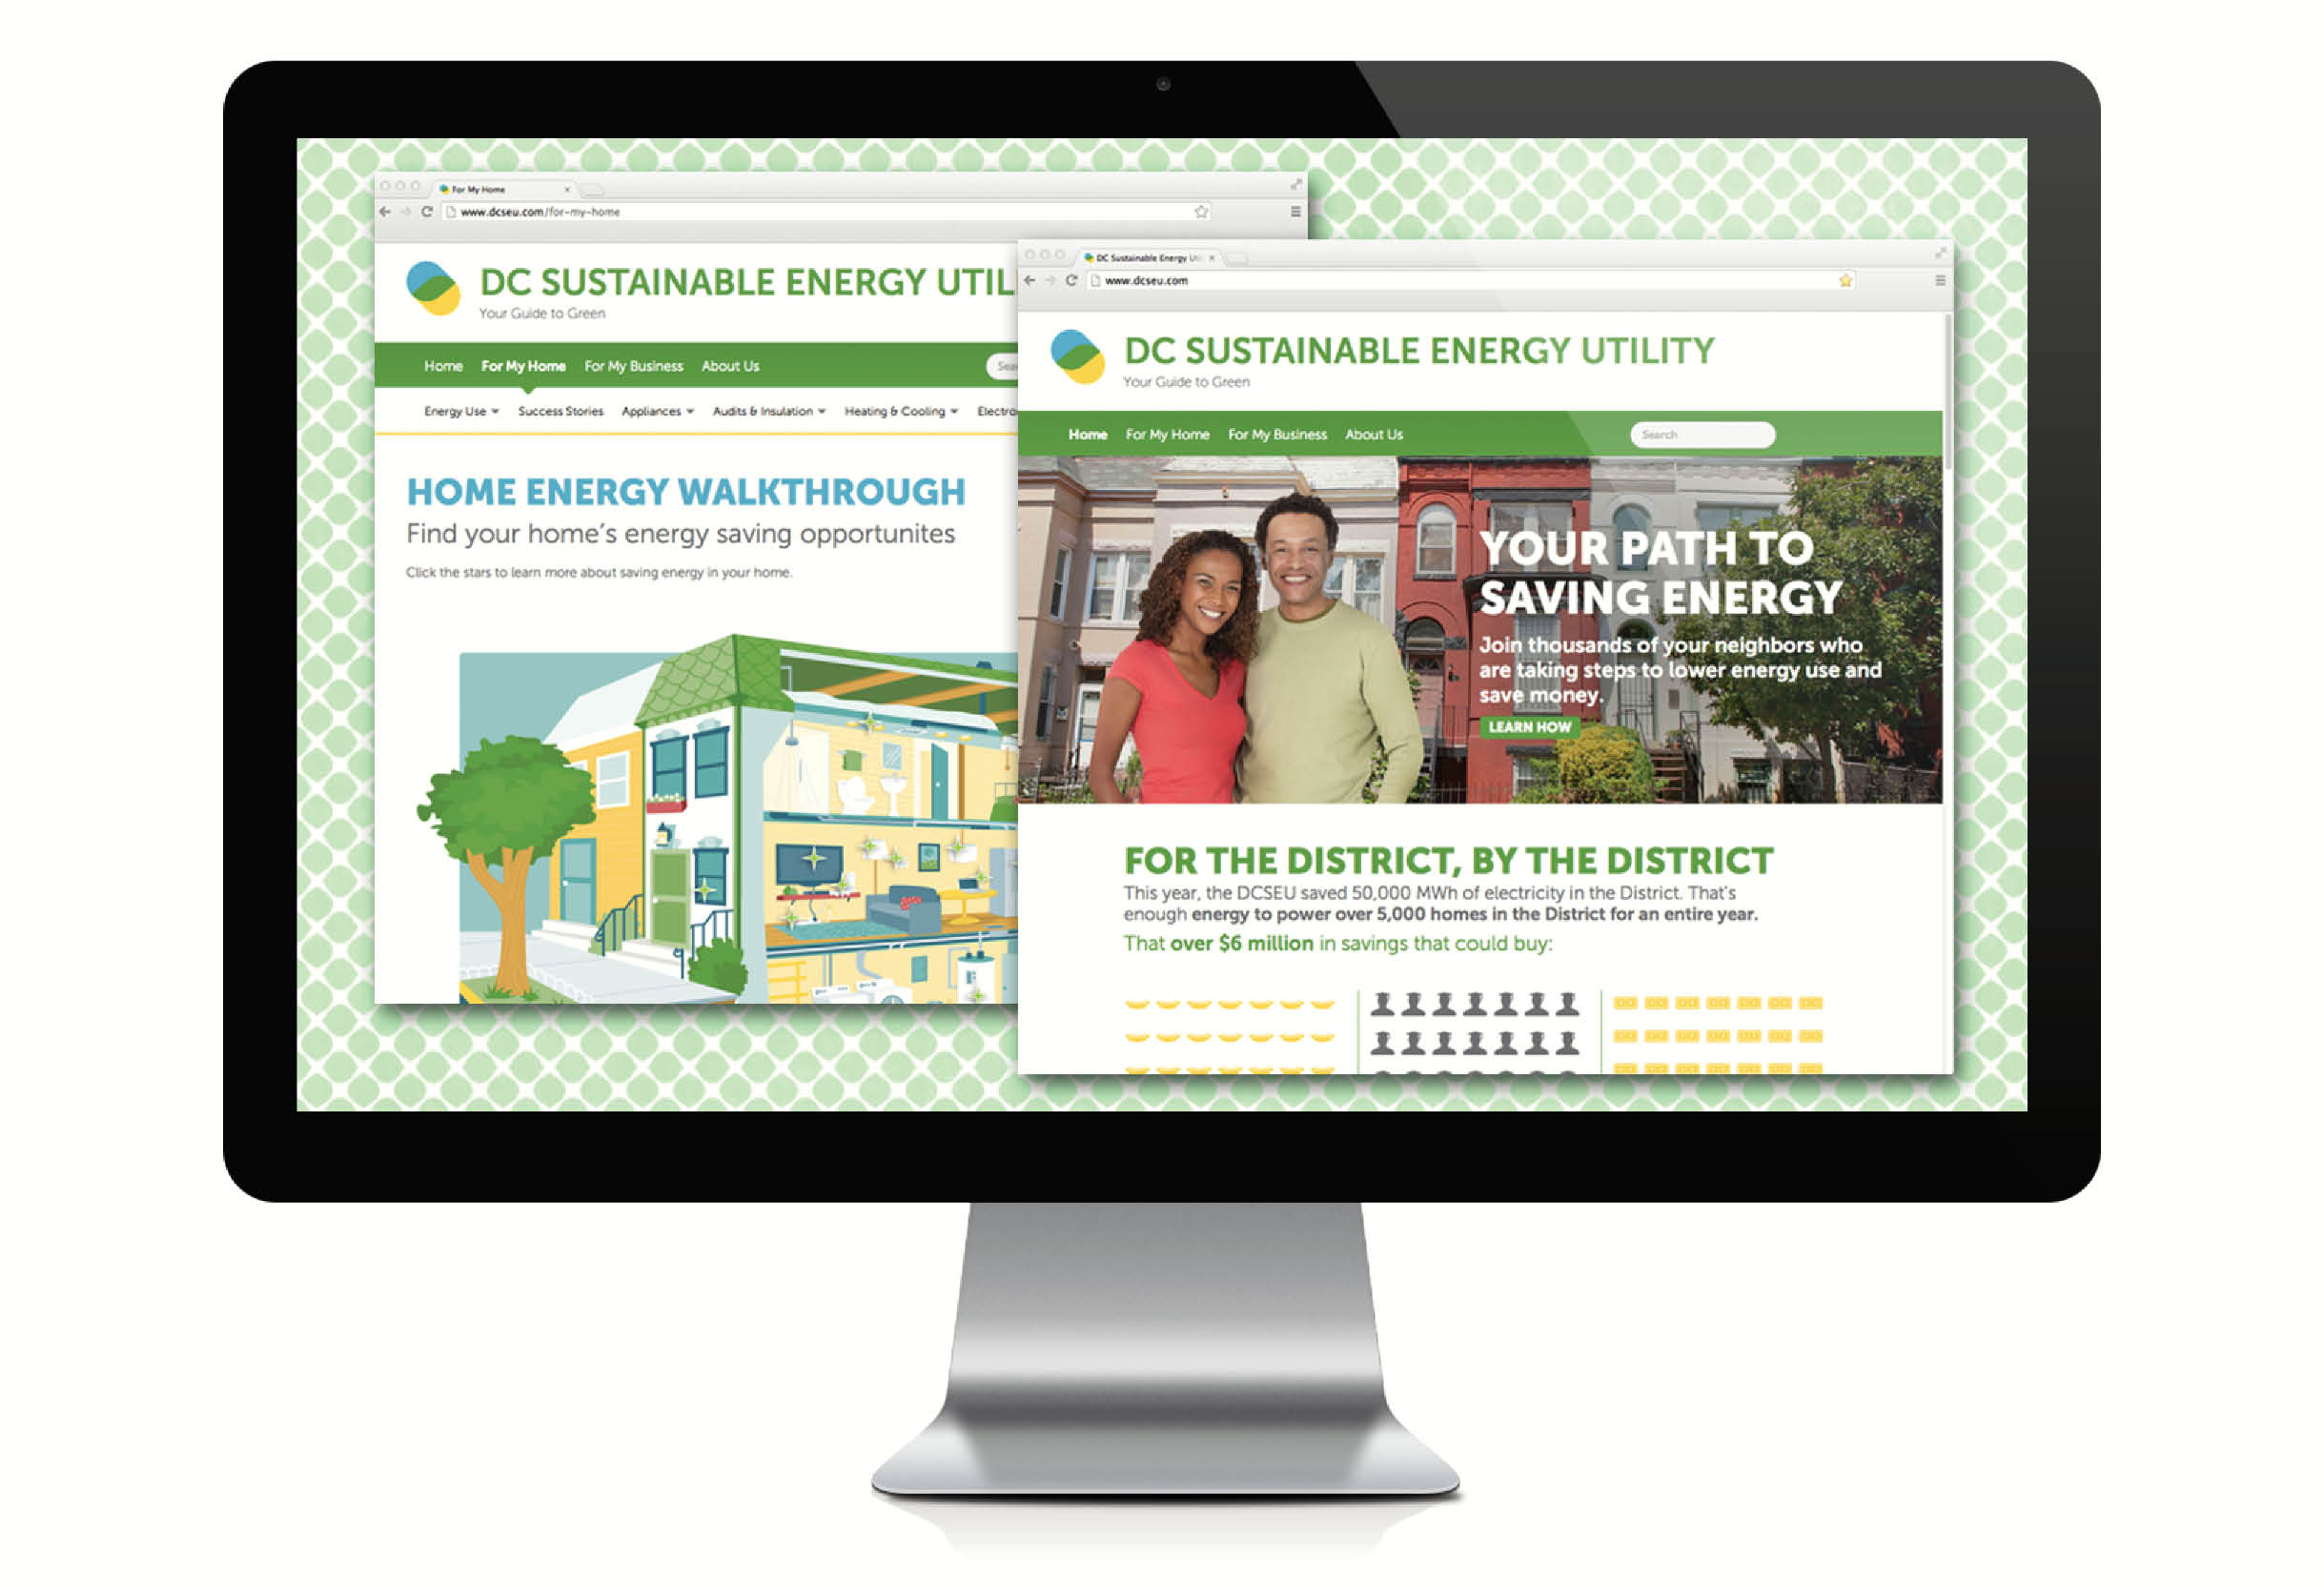 DCSEU website, homepage and home energy walkthrough page